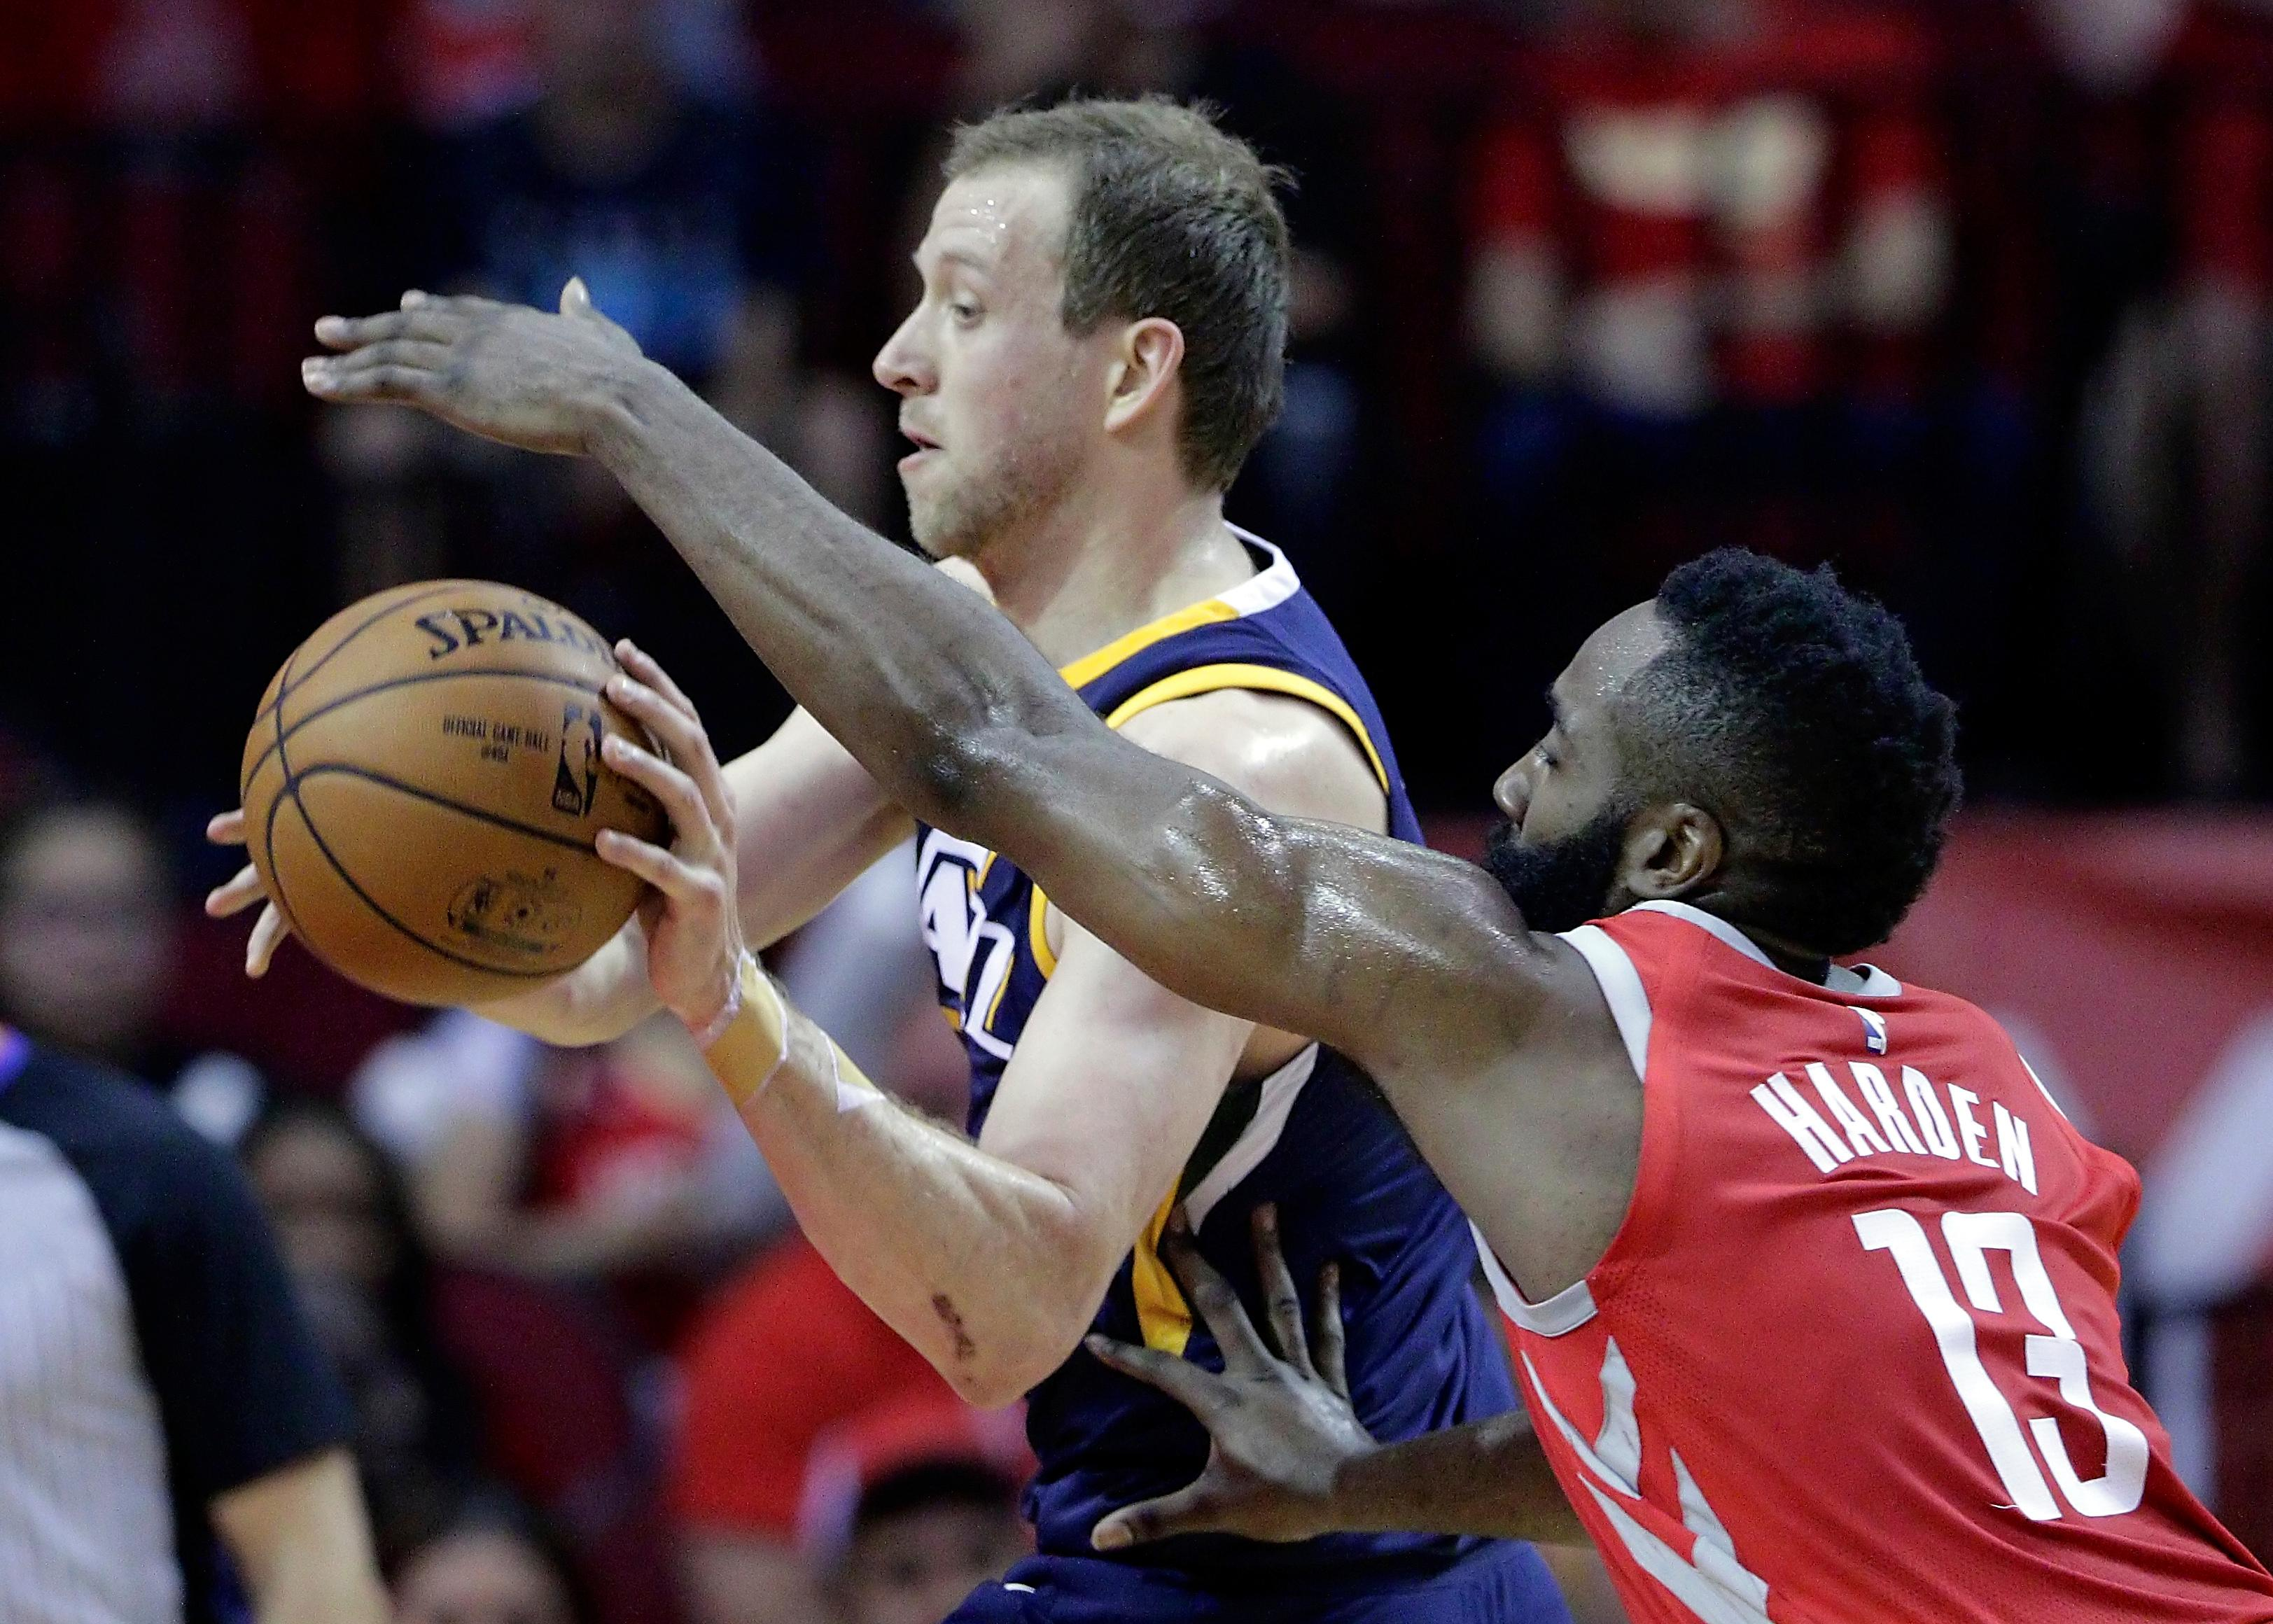 Utah Jazz forward Joe Ingles (2) looks to pass as Houston Rockets guard James Harden (13) reaches for the ball in the first half of an NBA basketball game Sunday, Nov. 5, 2017, in Houston. (AP Photo/Michael Wyke)